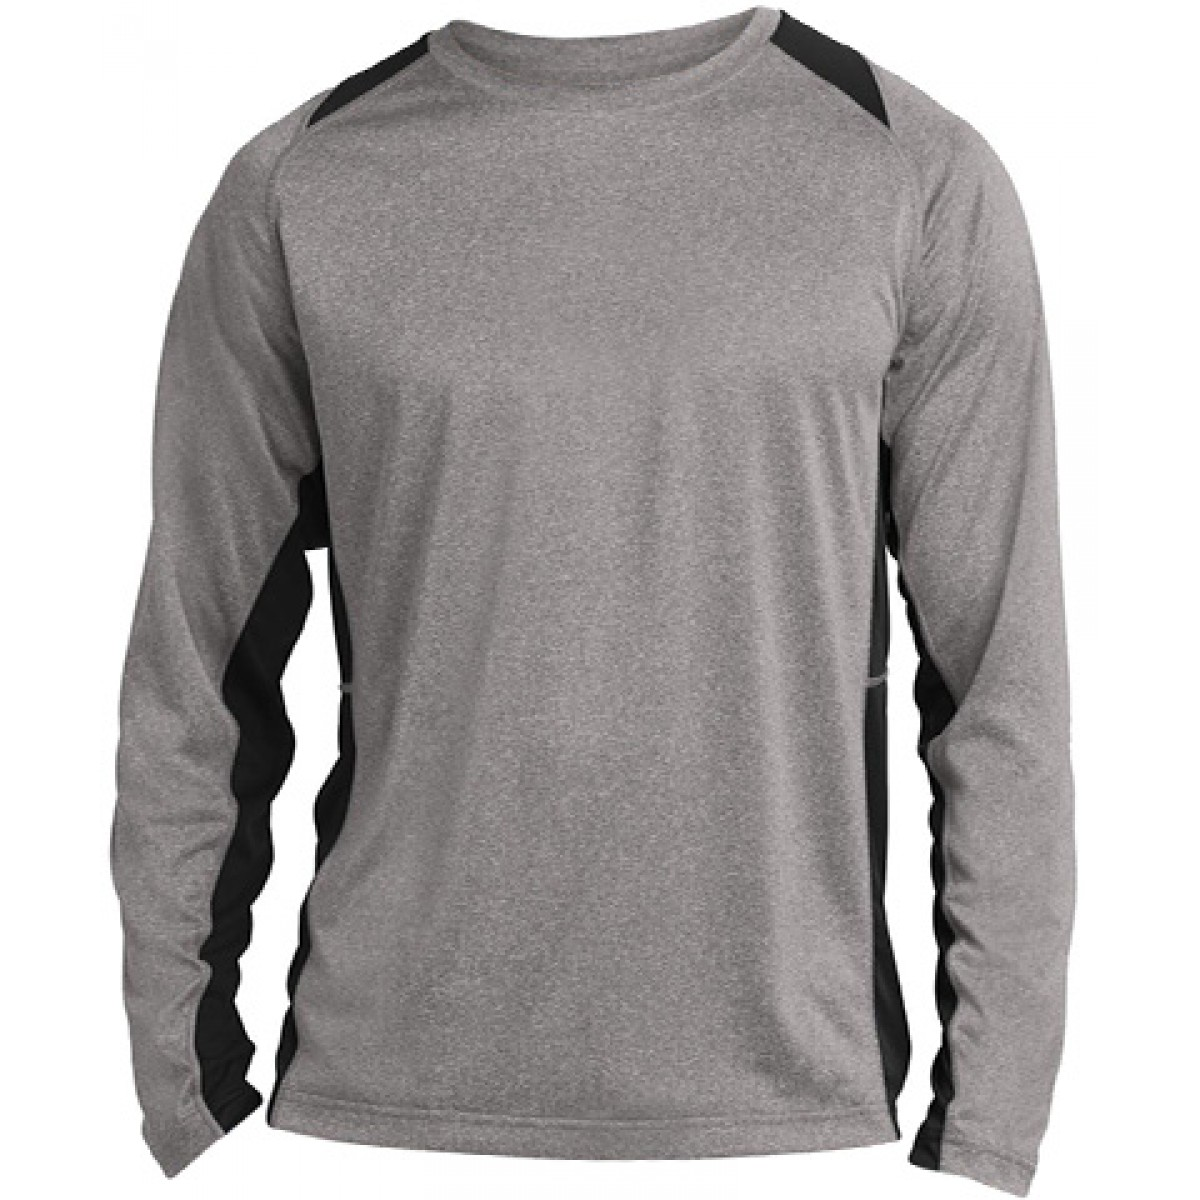 Long Sleeve Heather Colorblock Contender-Gray/Black-XL